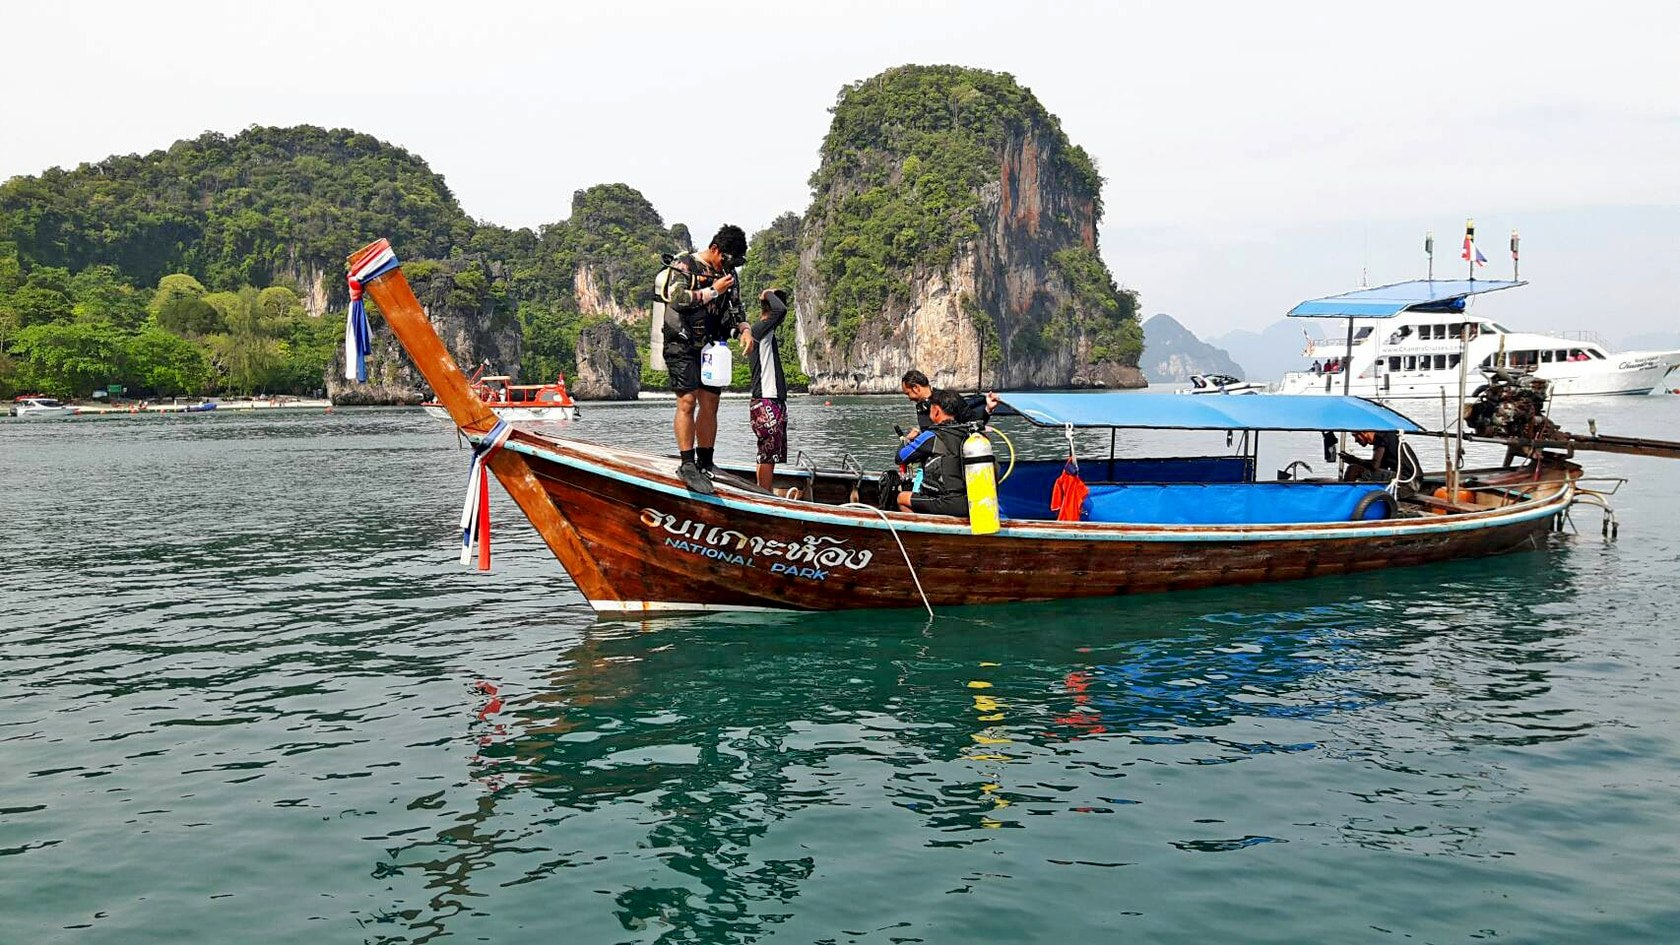 More fire jellyfish found off Krabi | The Thaiger